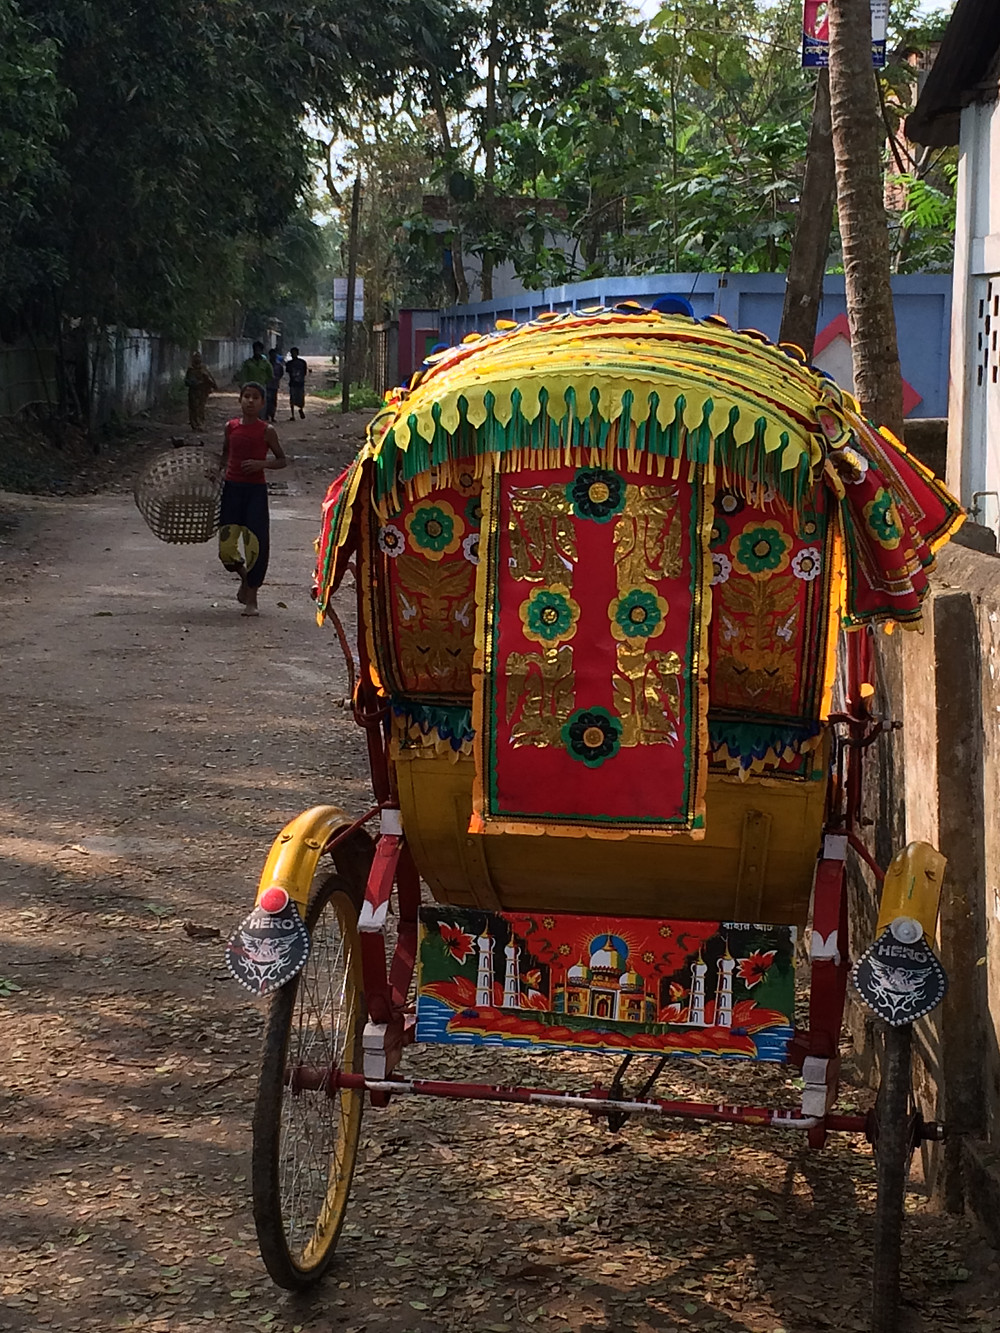 The rickshaw we rode in for our village tour